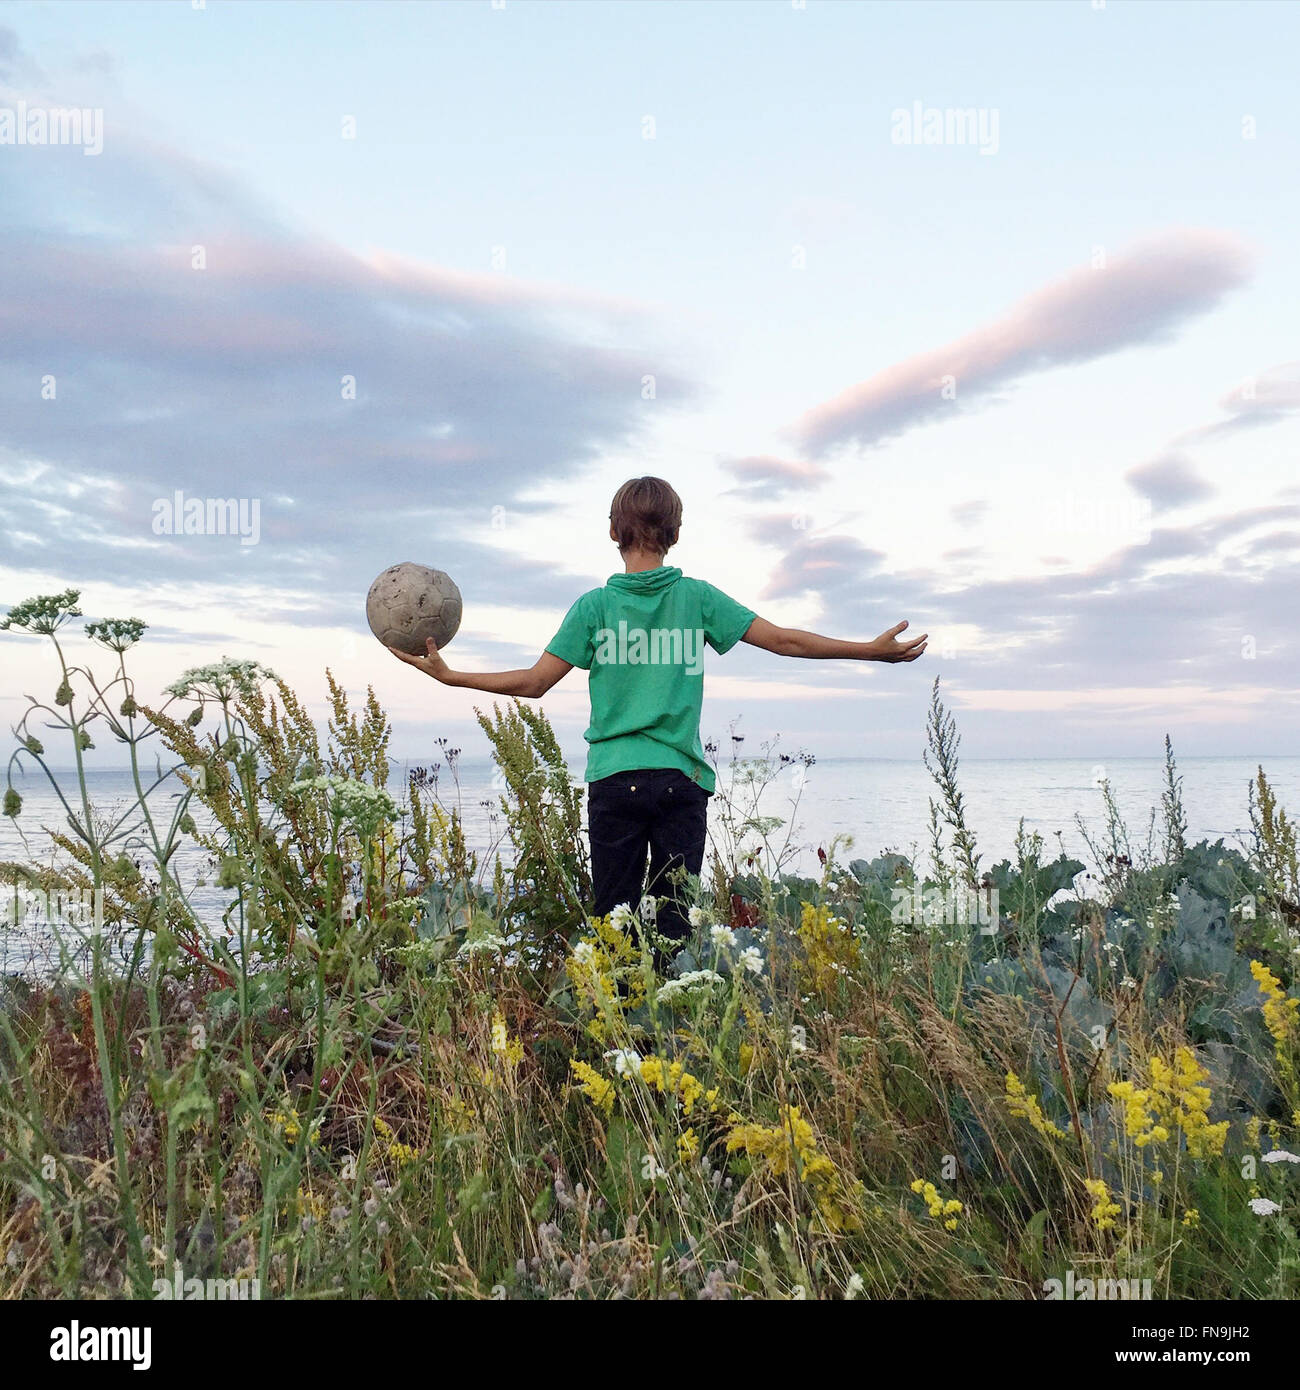 Boy standing in a field holding a football, Ringshaug, Tonsberg, Norway - Stock Image